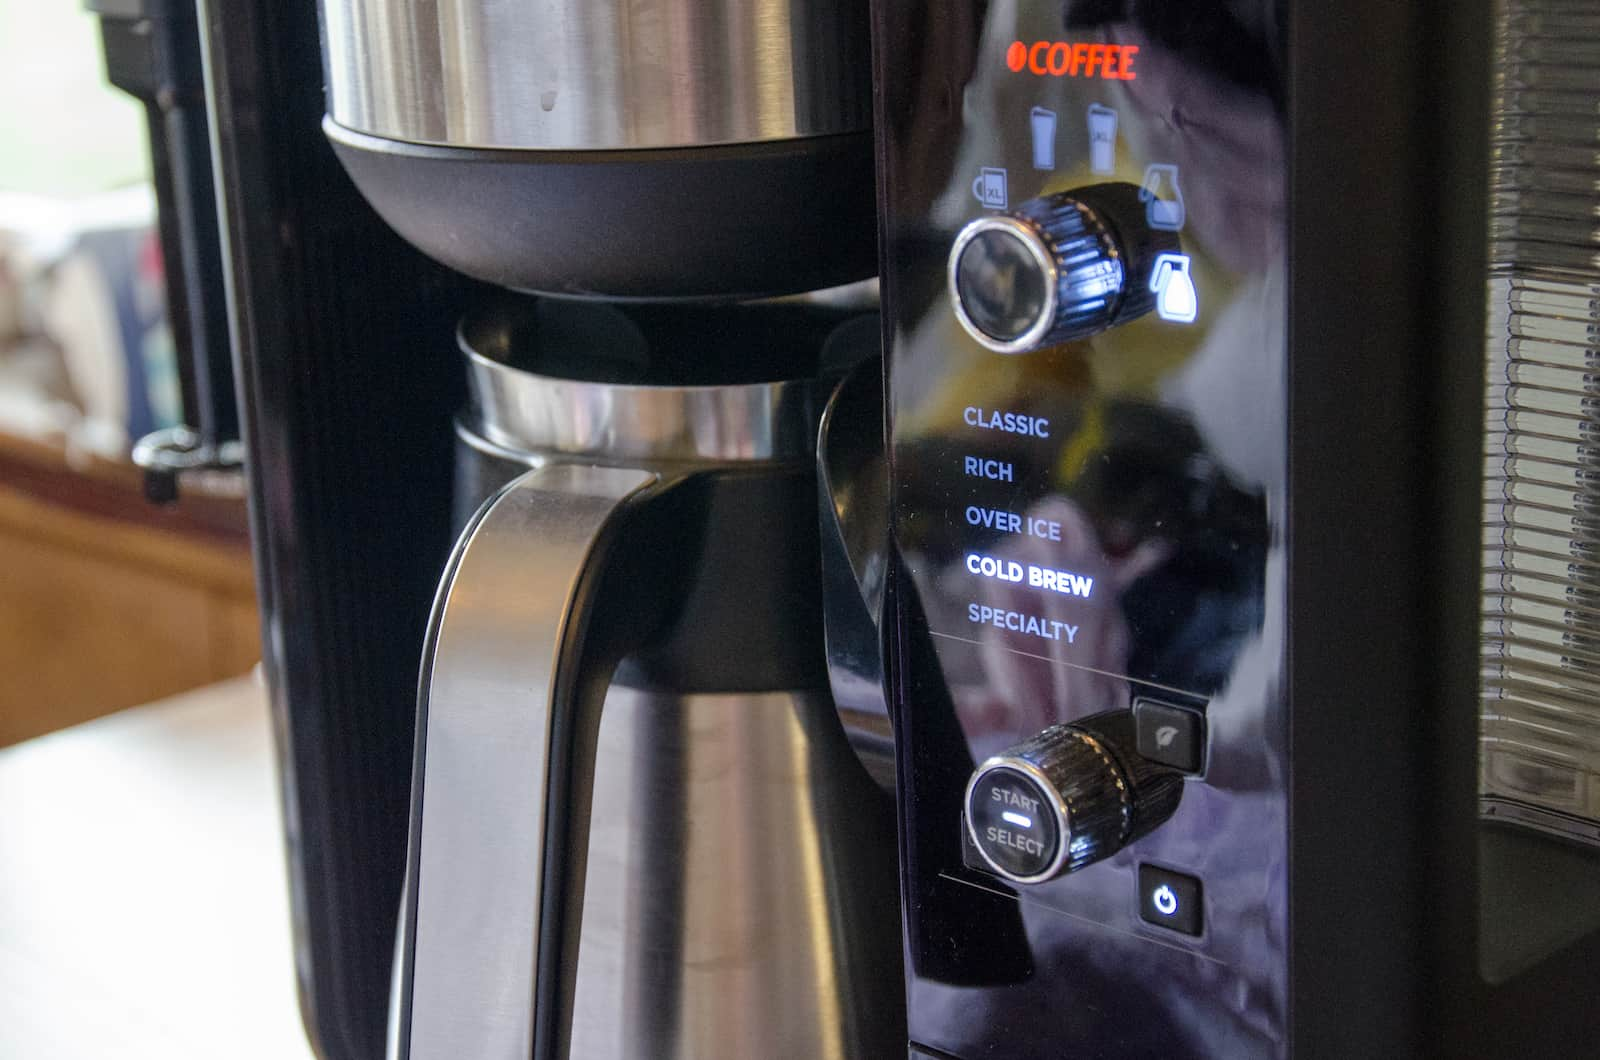 Ninja Coffee Maker Review - Hot and Cold Brewed System